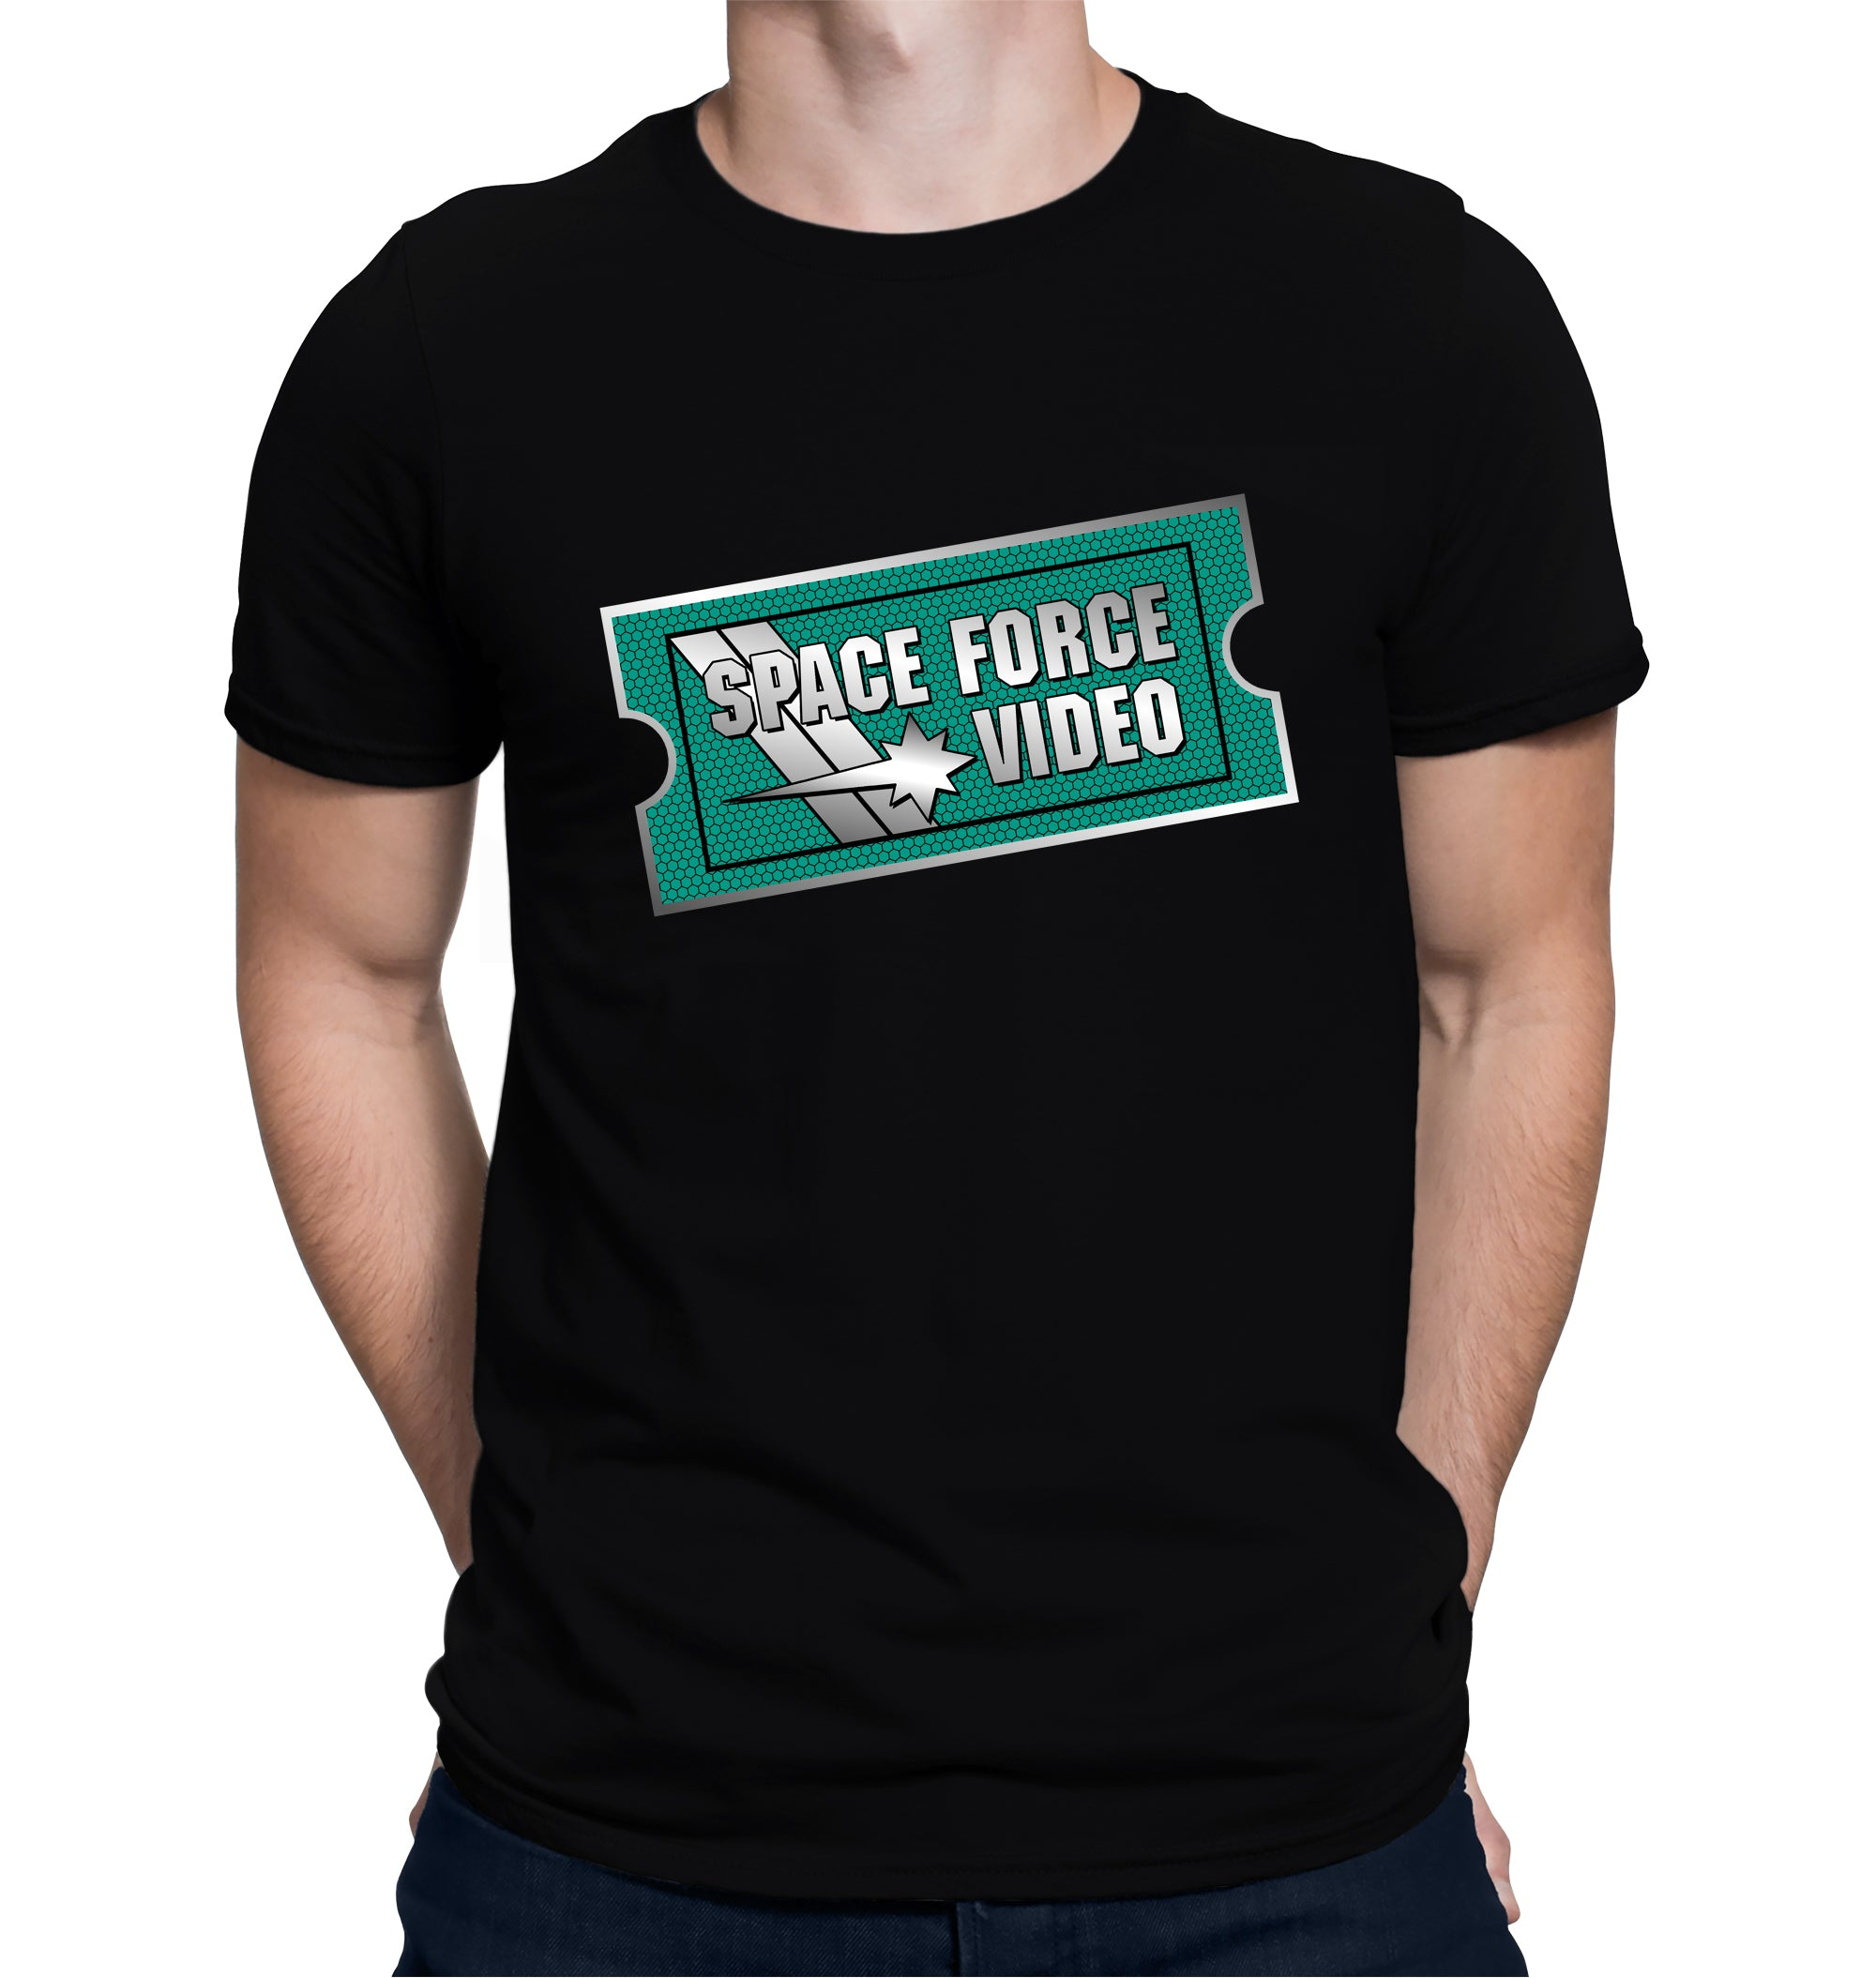 Space Force Video T-Shirt on Model